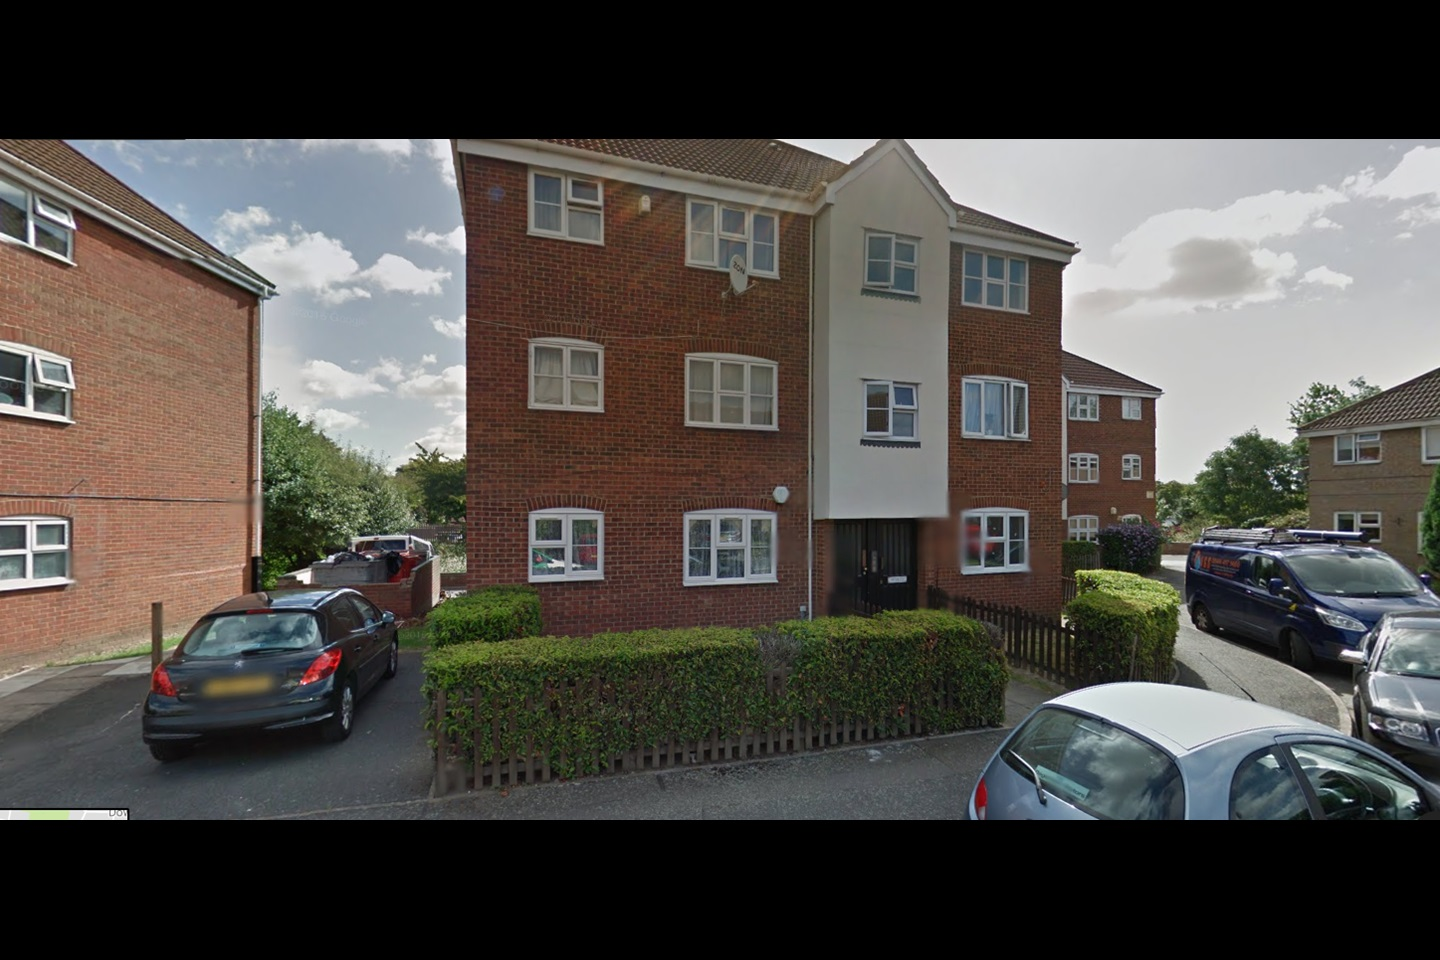 Dagenham - 1 Bed Flat, Butteridges Close, RM9 - To Rent ...